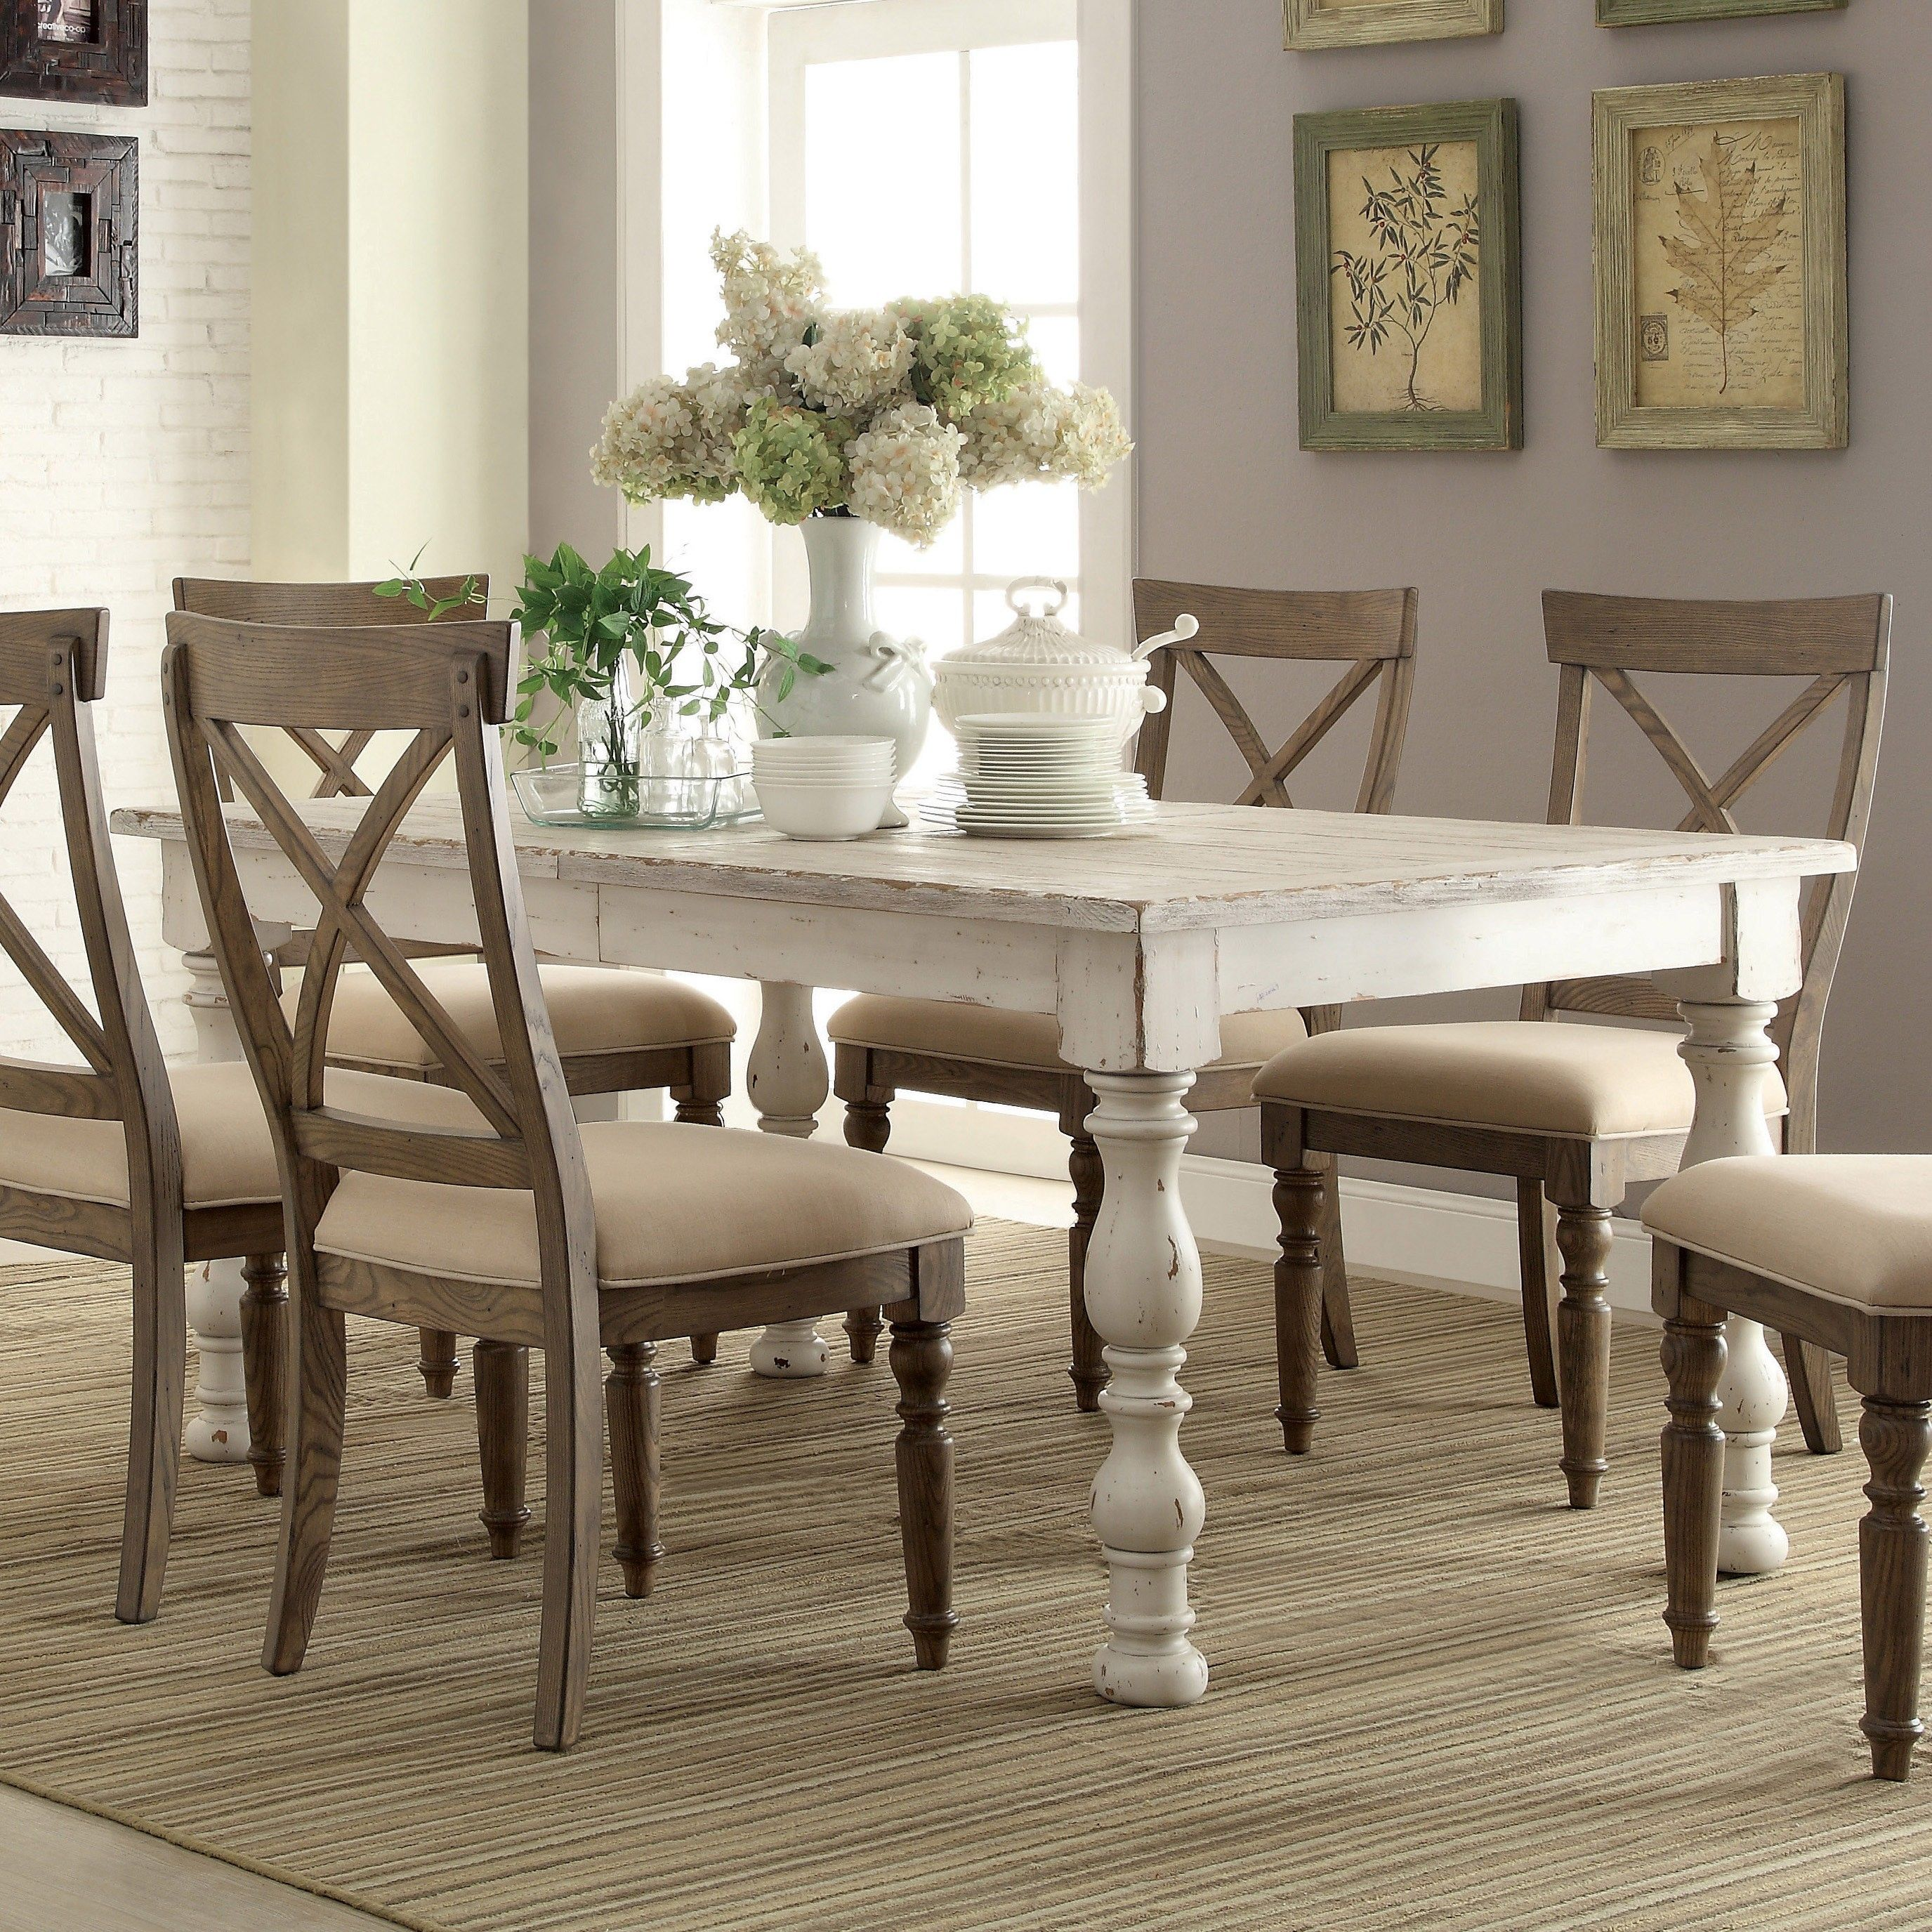 White Dining Table Set Aberdeen Wood Rectangular Dining Table And Chairs In